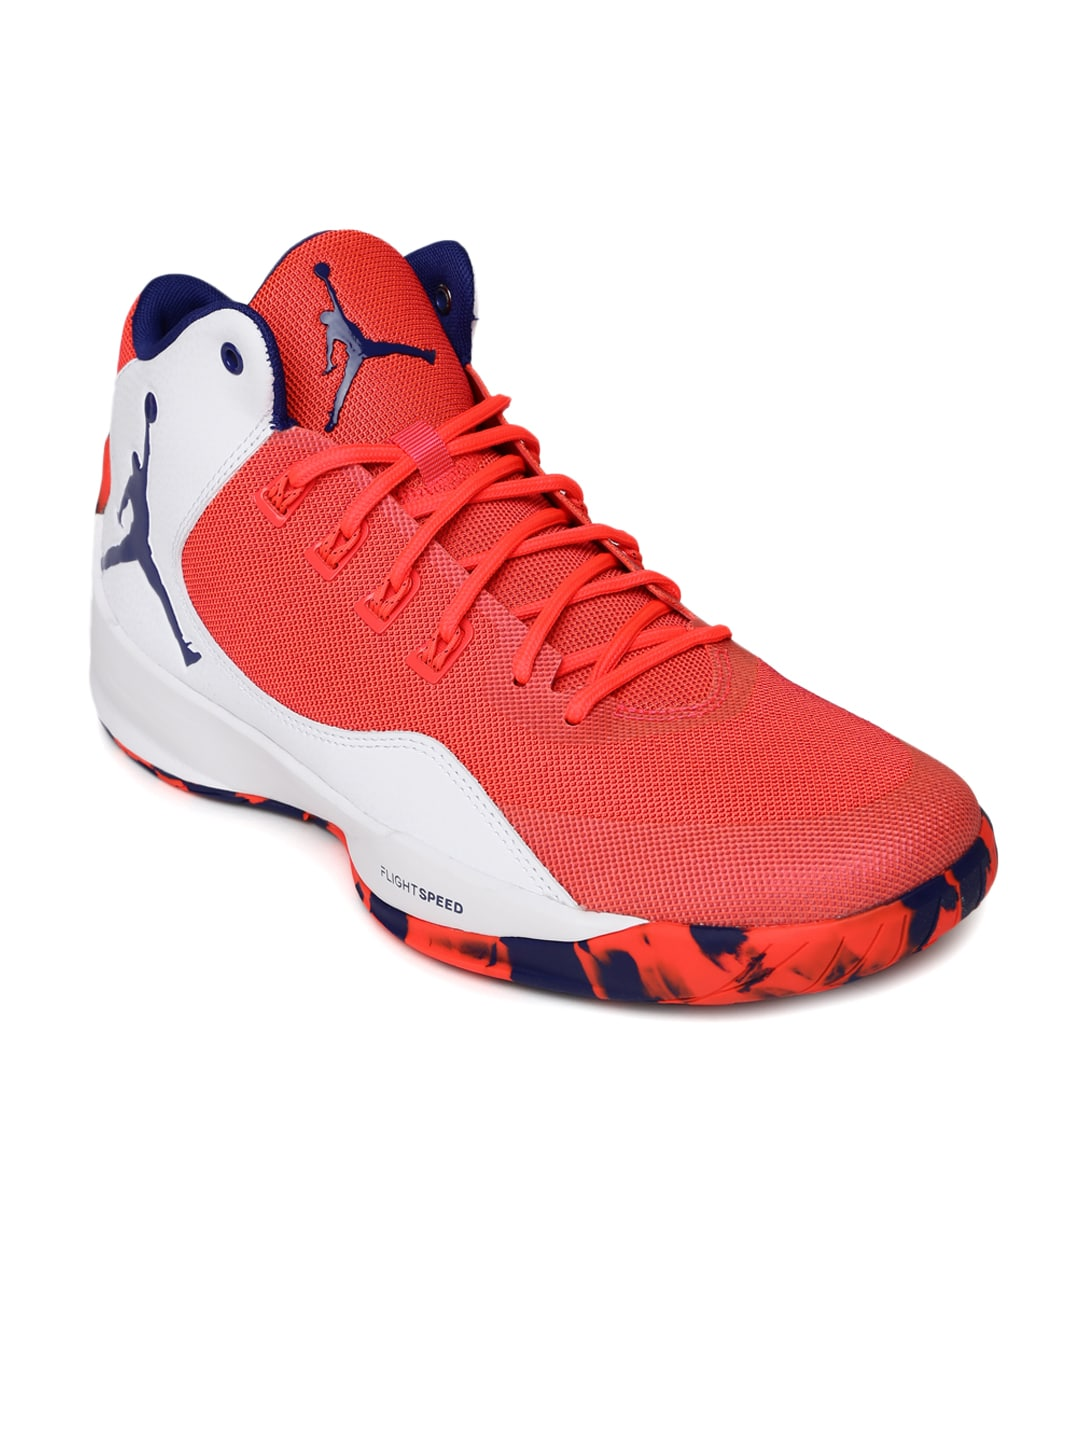 a1379461698fb6 Nike 844065-607 Men Neon Pink And White Jordan Rising High 2 Basketball  Shoes- Price in India